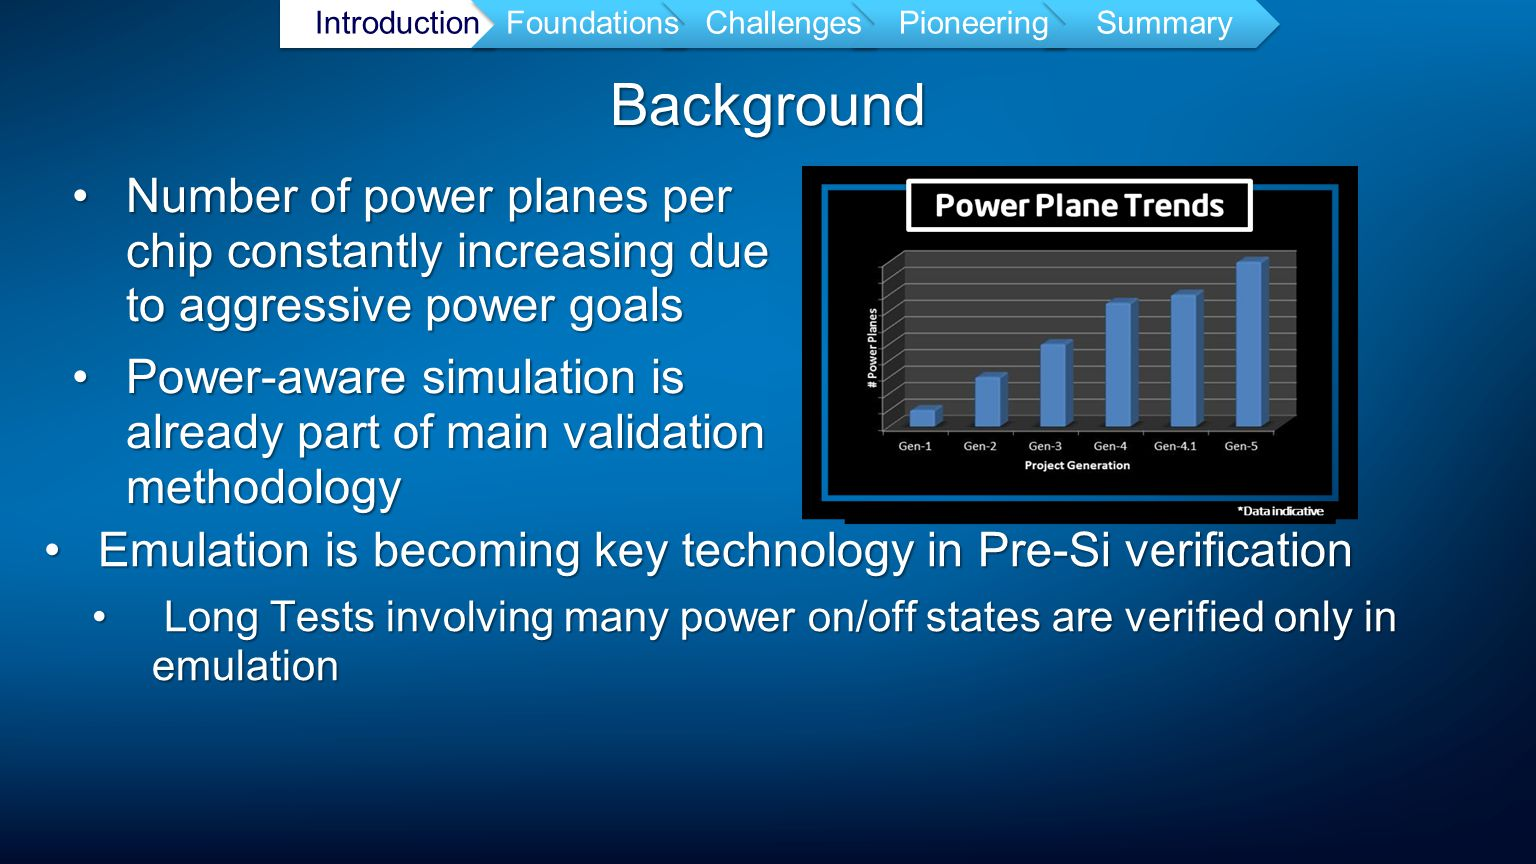 Summary Power Aware Emulation is highly required in big CPU projectPower Aware Emulation is highly required in big CPU project We took the heavy-lifting of specifying, documenting and productizing power-aware emulation from scratchWe took the heavy-lifting of specifying, documenting and productizing power-aware emulation from scratch Many challenges were found, partMany challenges were found, part are unique to emulation and can be addressed by multiple approaches Currently deploying Power Aware Emulation in big CPU model IntroductionFoundationsChallengesPioneeringSummary